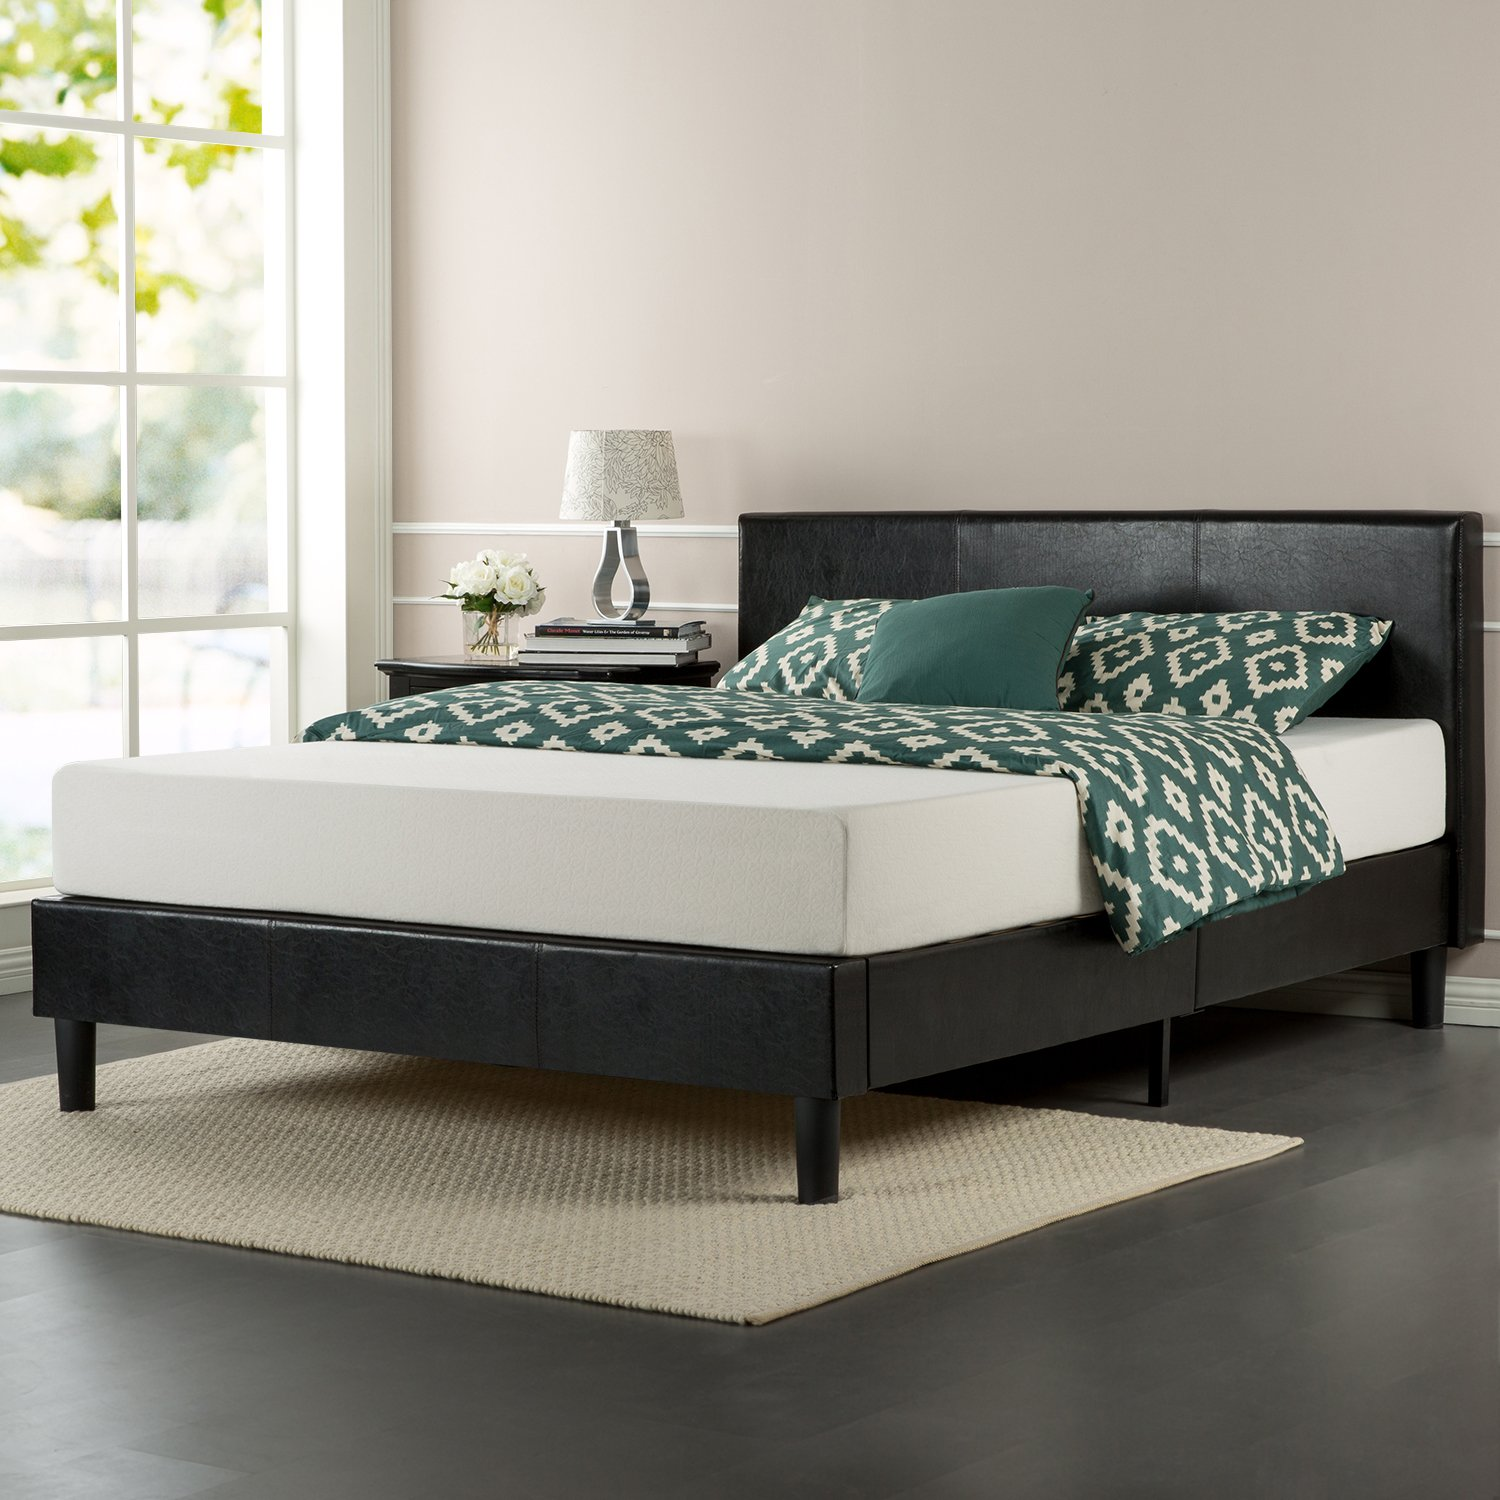 Pictures of platform beds - Amazon Com Zinus Faux Leather Upholstered Platform Bed With Wooden Slats King Kitchen Dining